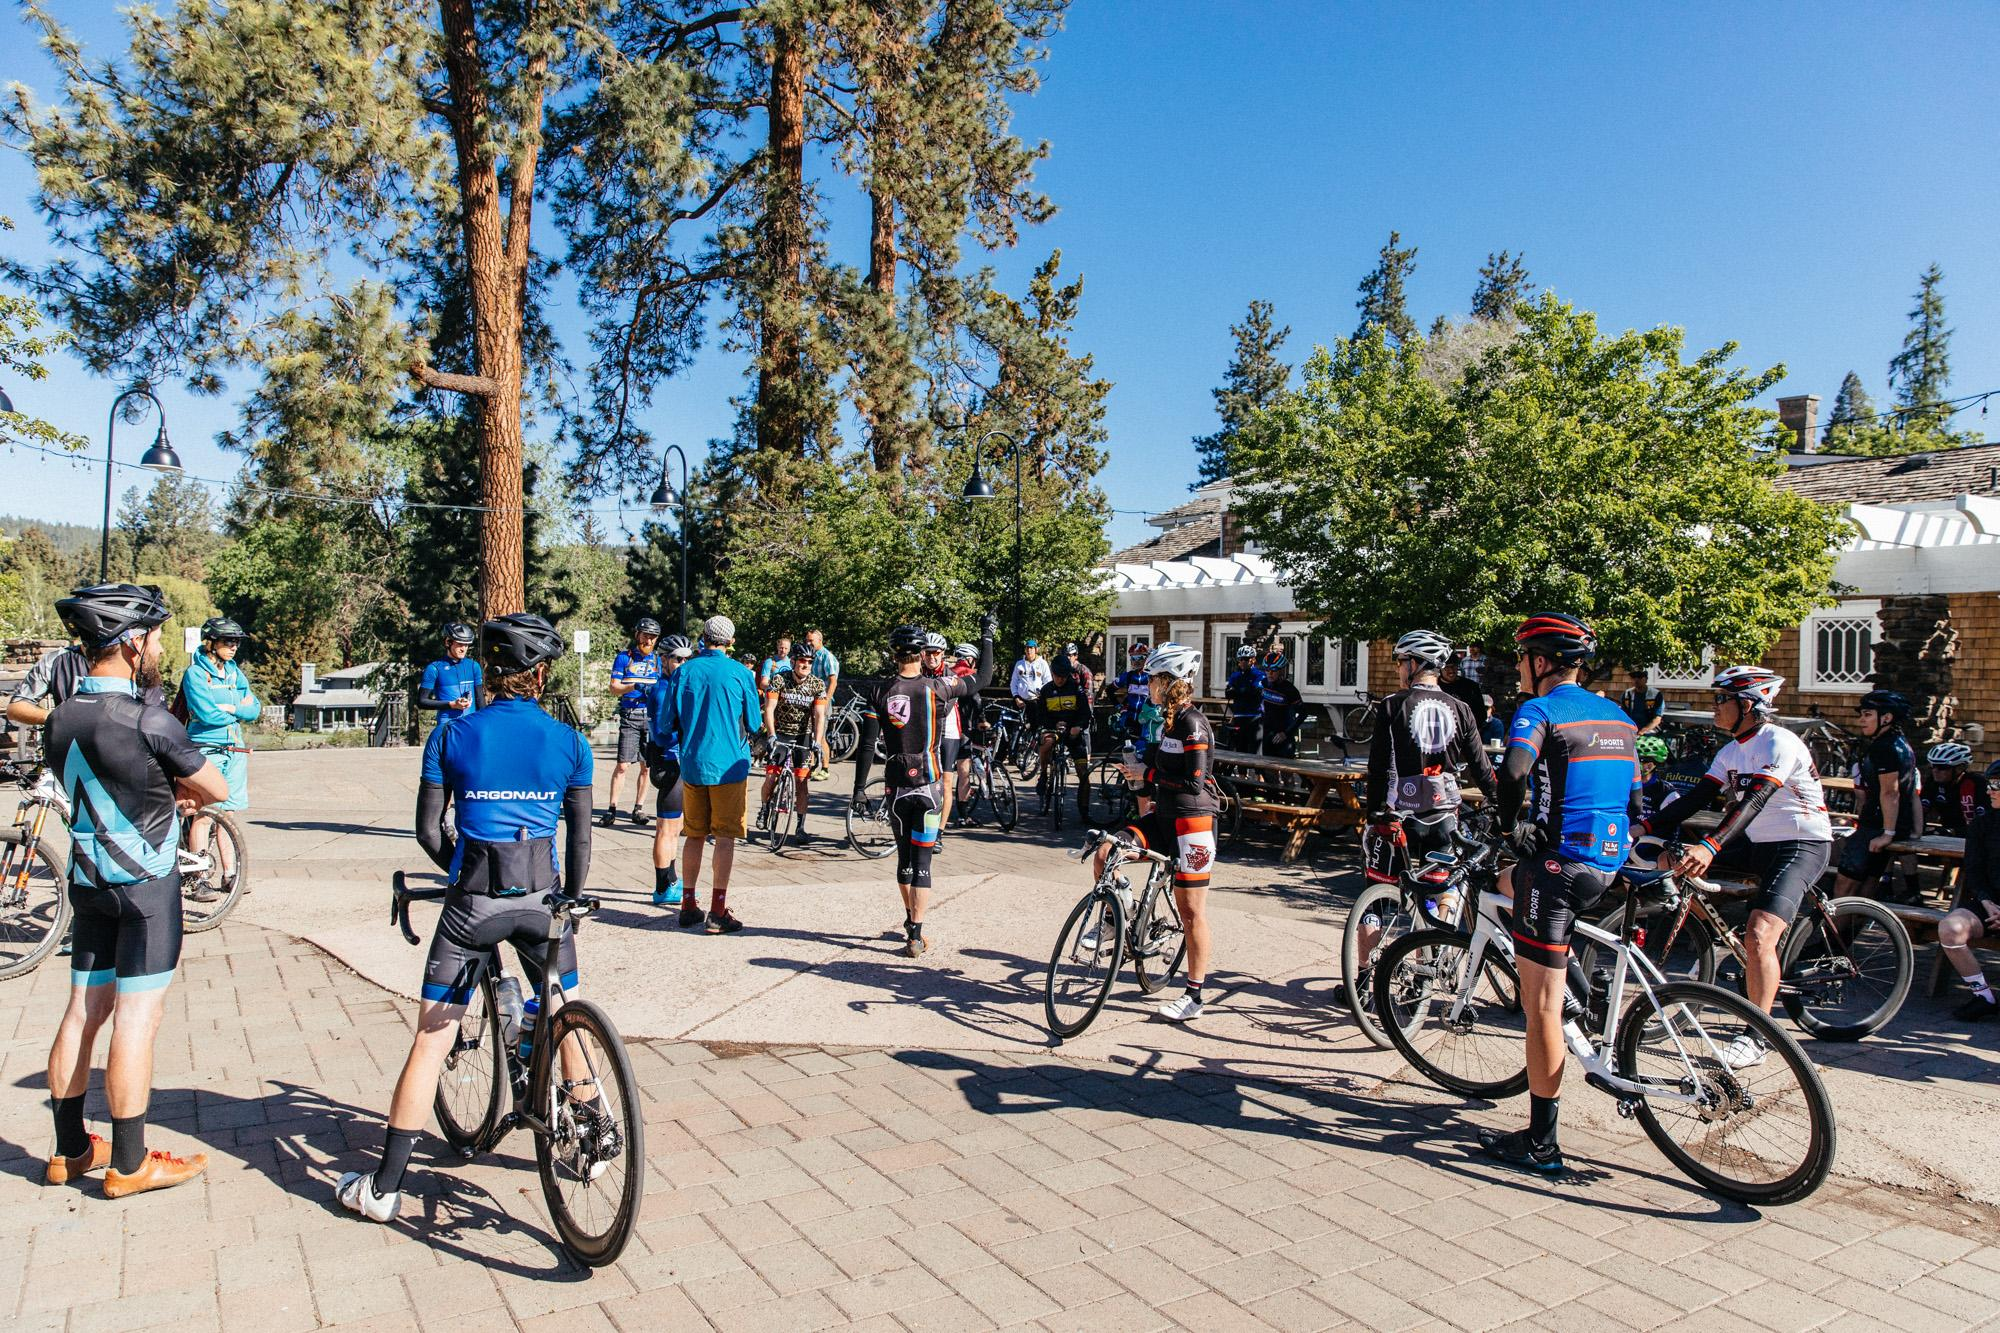 Riders met at 8:30 at Crow's Feet Commons